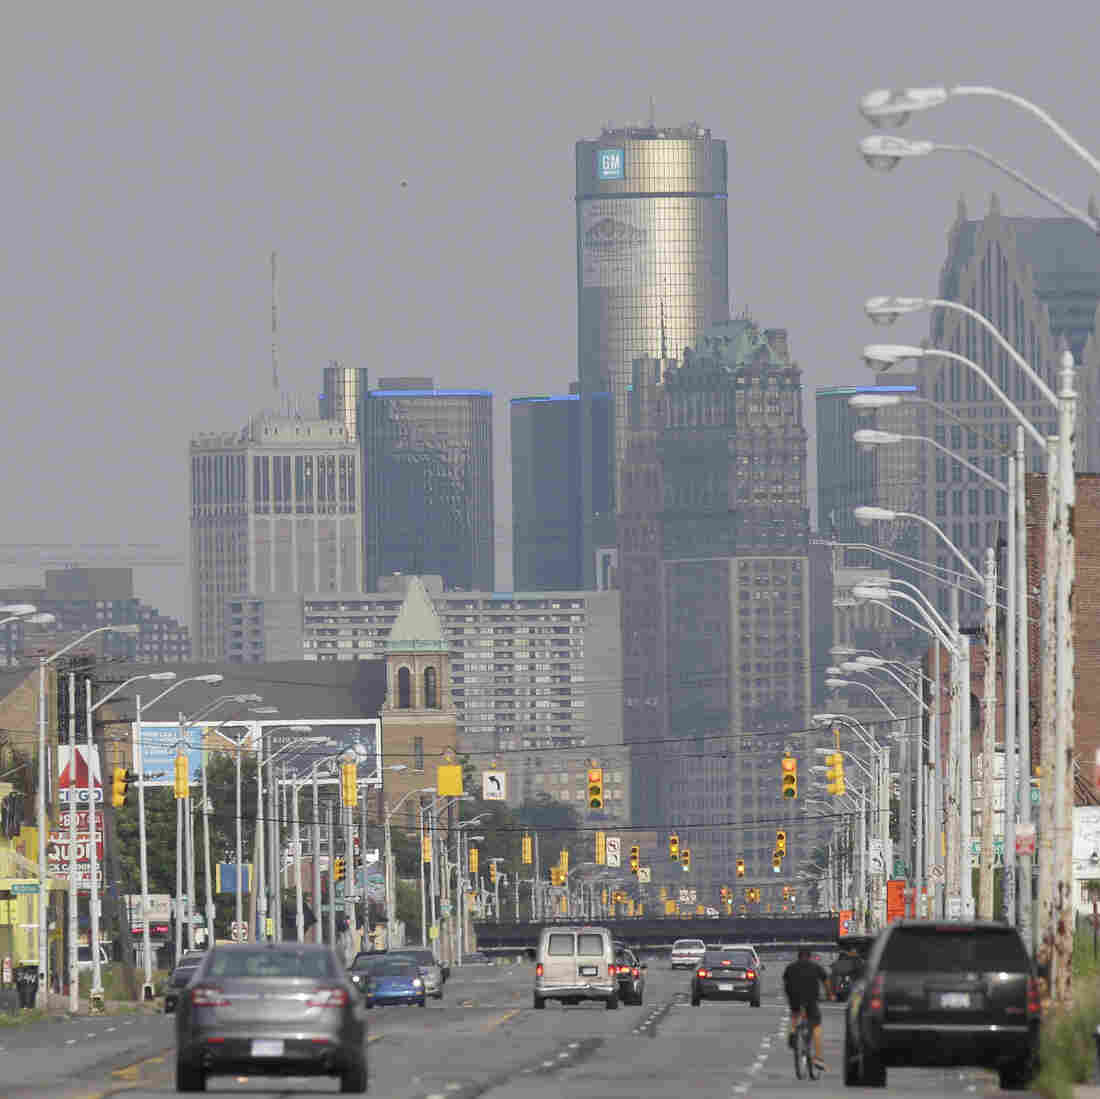 The Detroit skyline gleams from Grand River Ave., a major thoroughfare into some of the city's blighted neighborhoods.